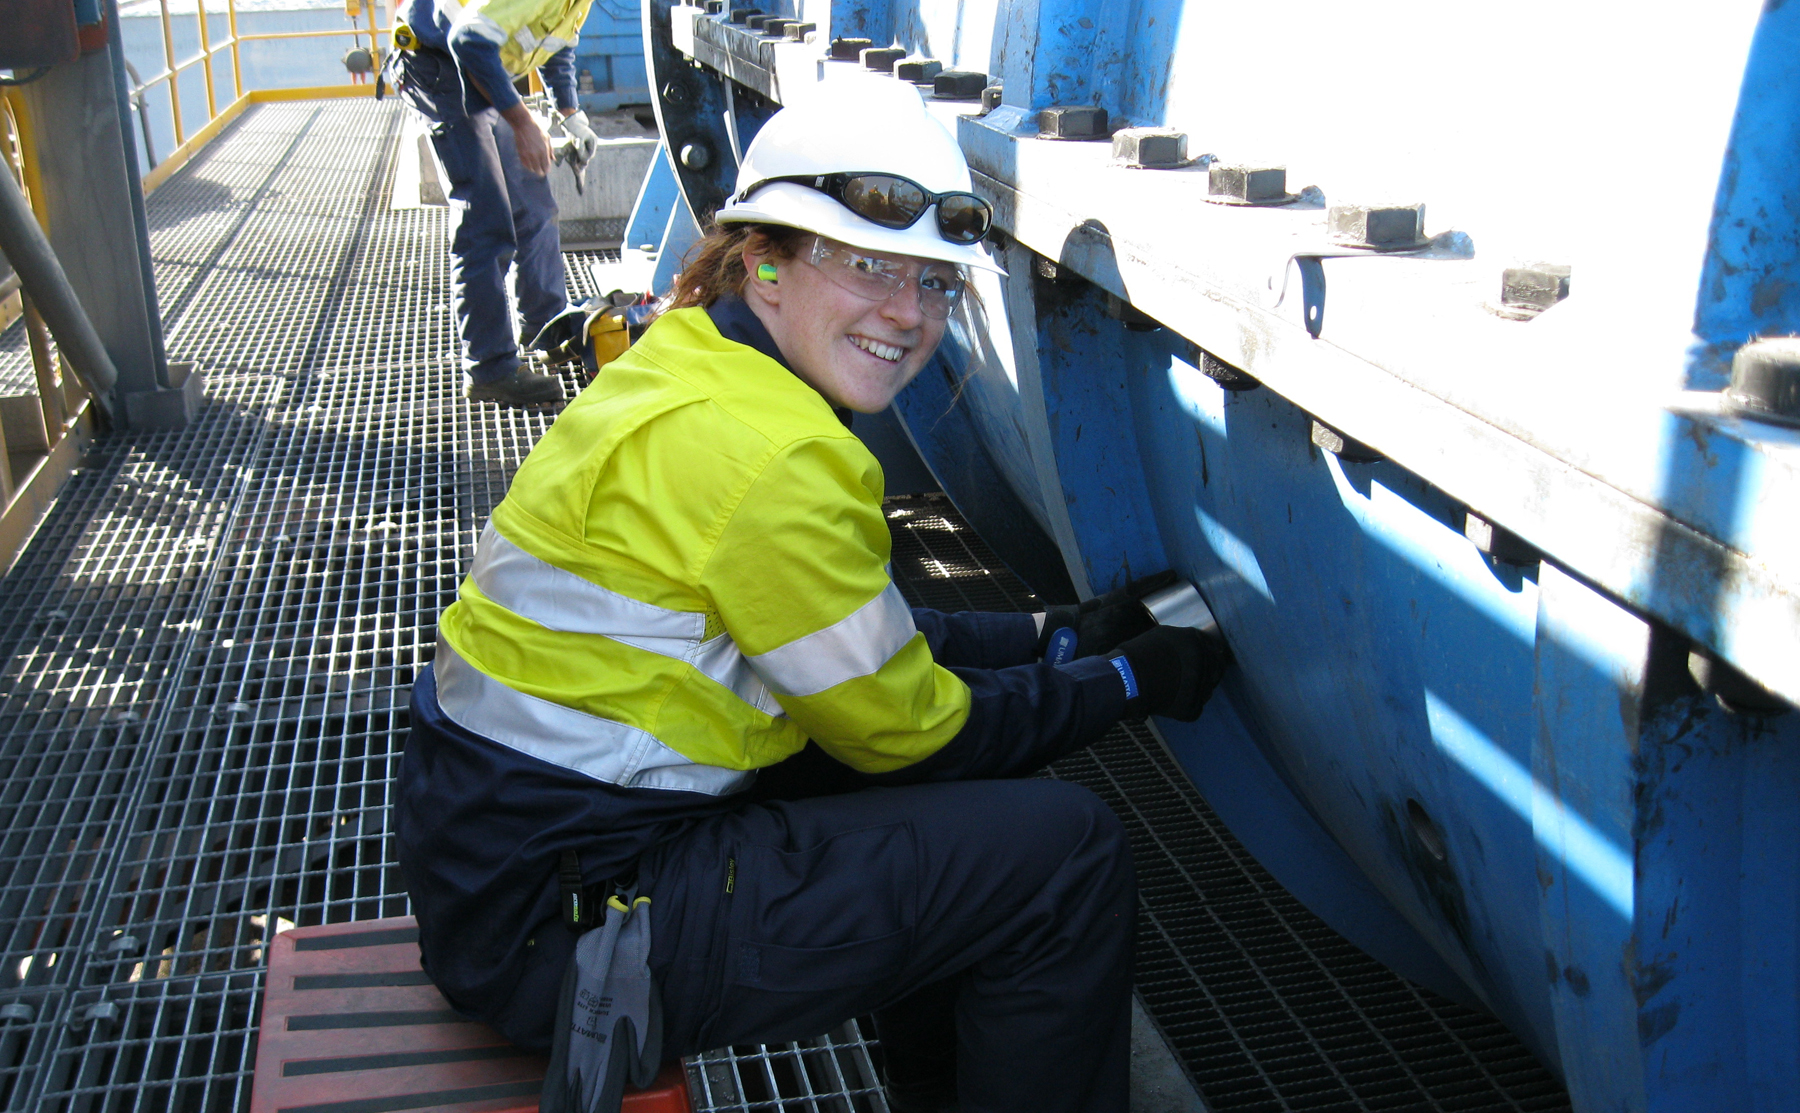 Young female engineer placing acoustic analyser on equipment